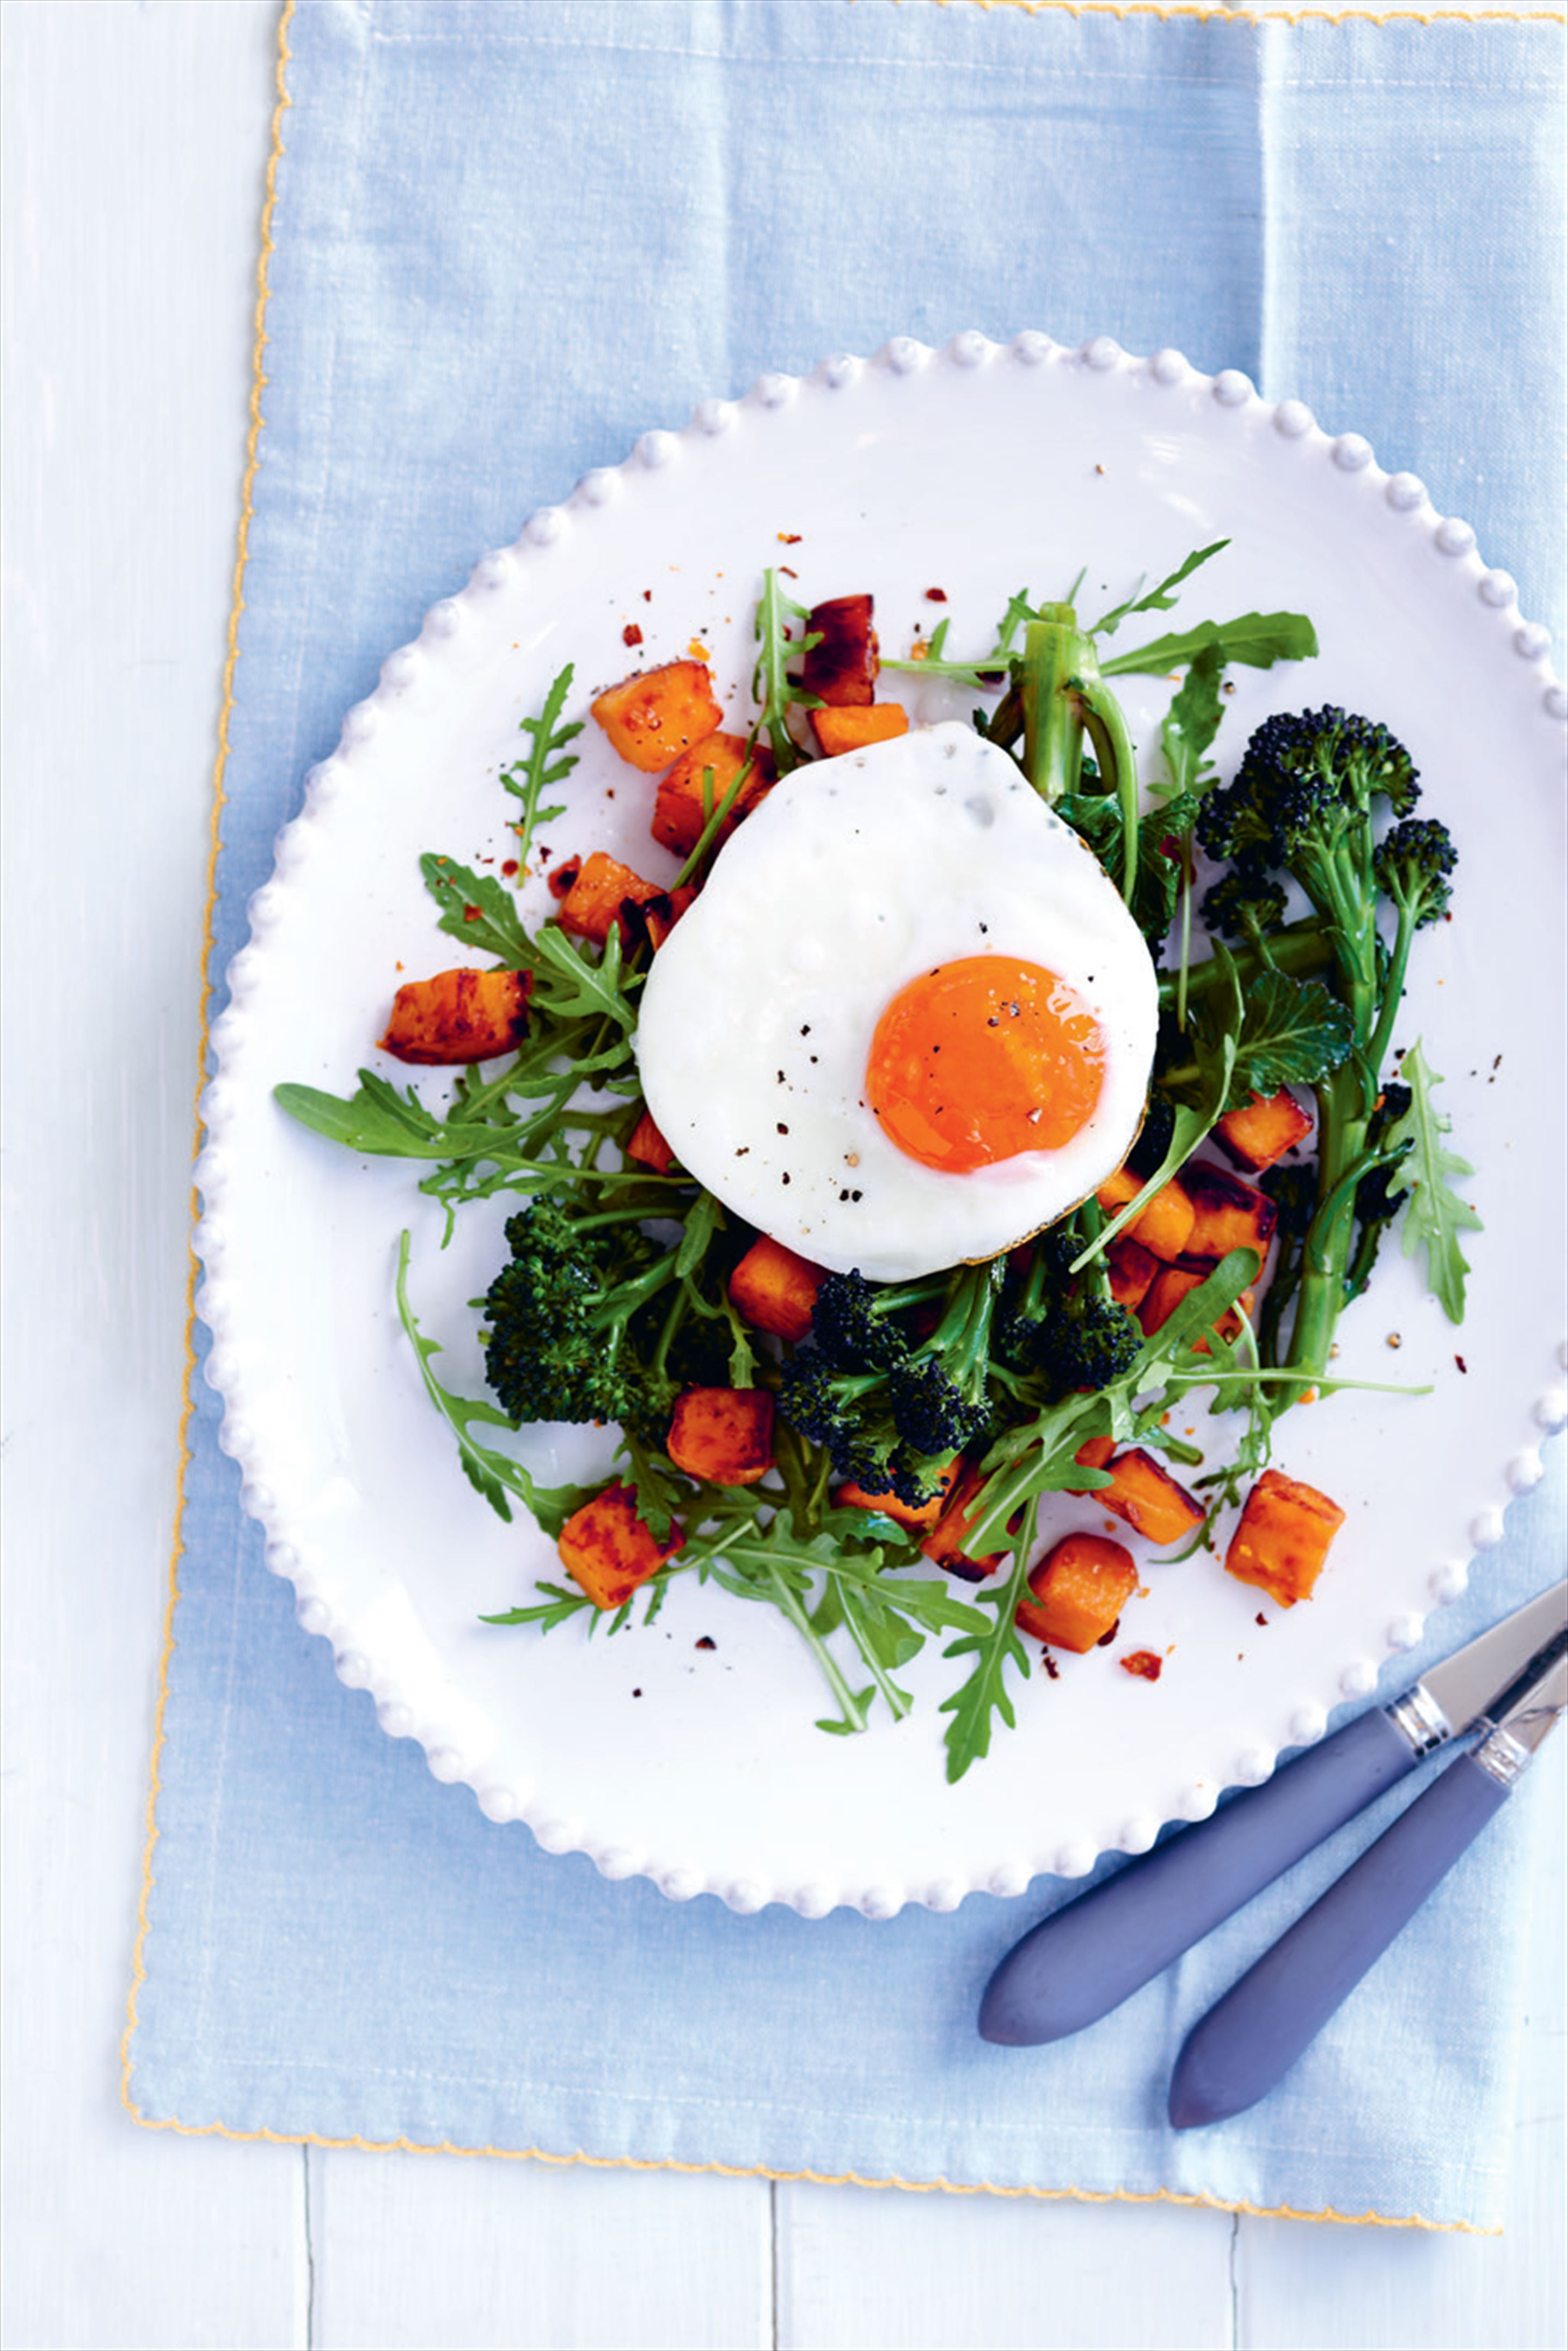 Sweet potato and fried egg with rocket